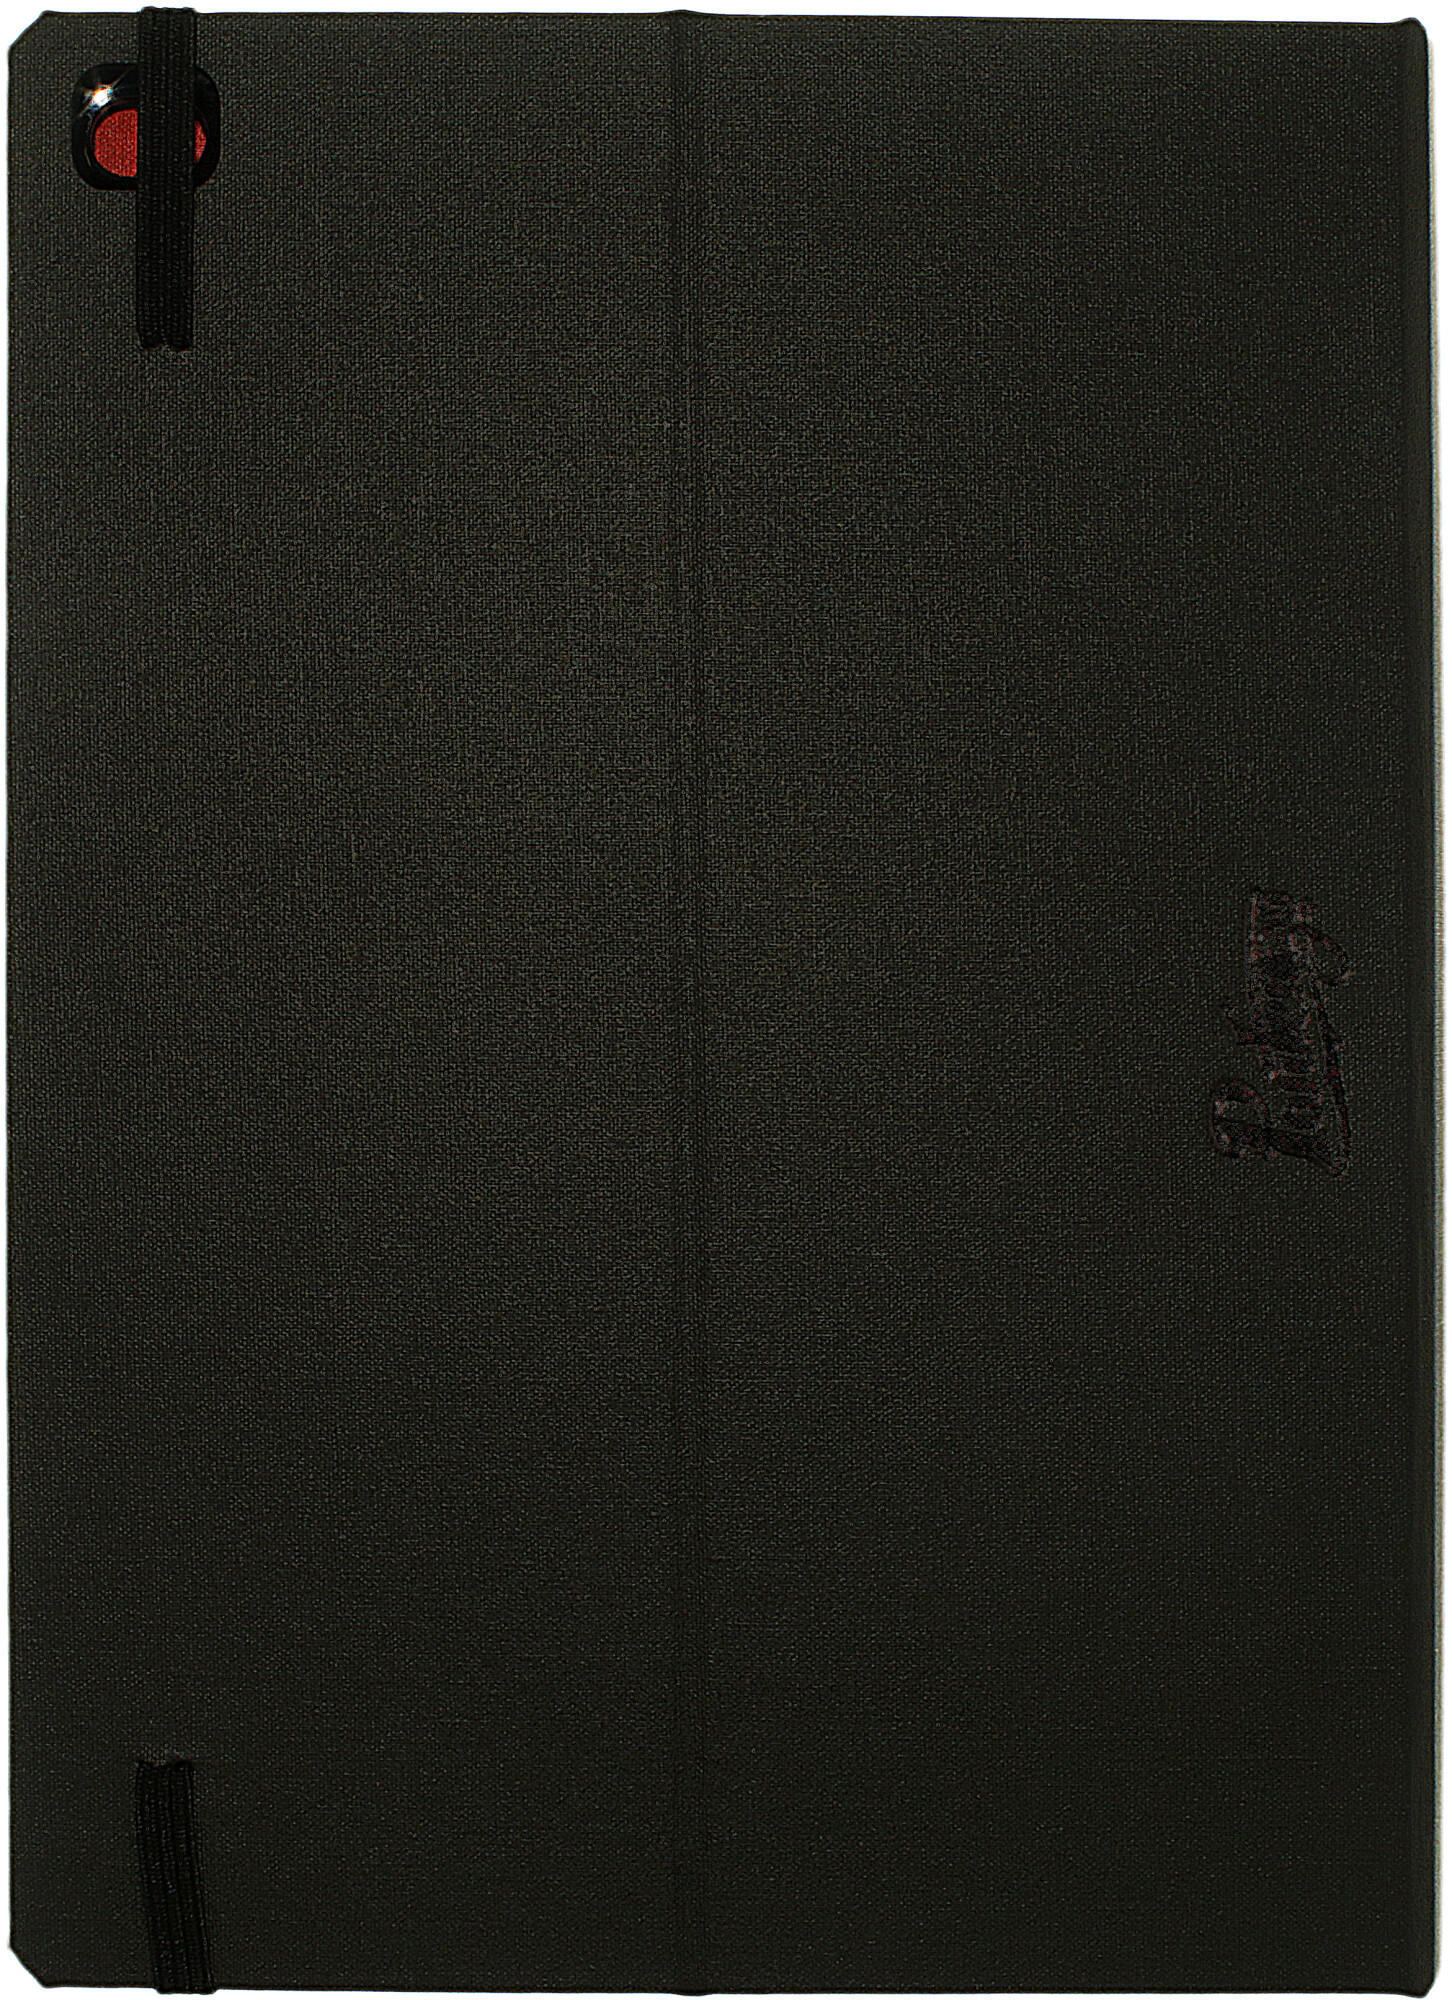 Portenzo Ipad Air 2 Tablet Case AT16001-A2-100